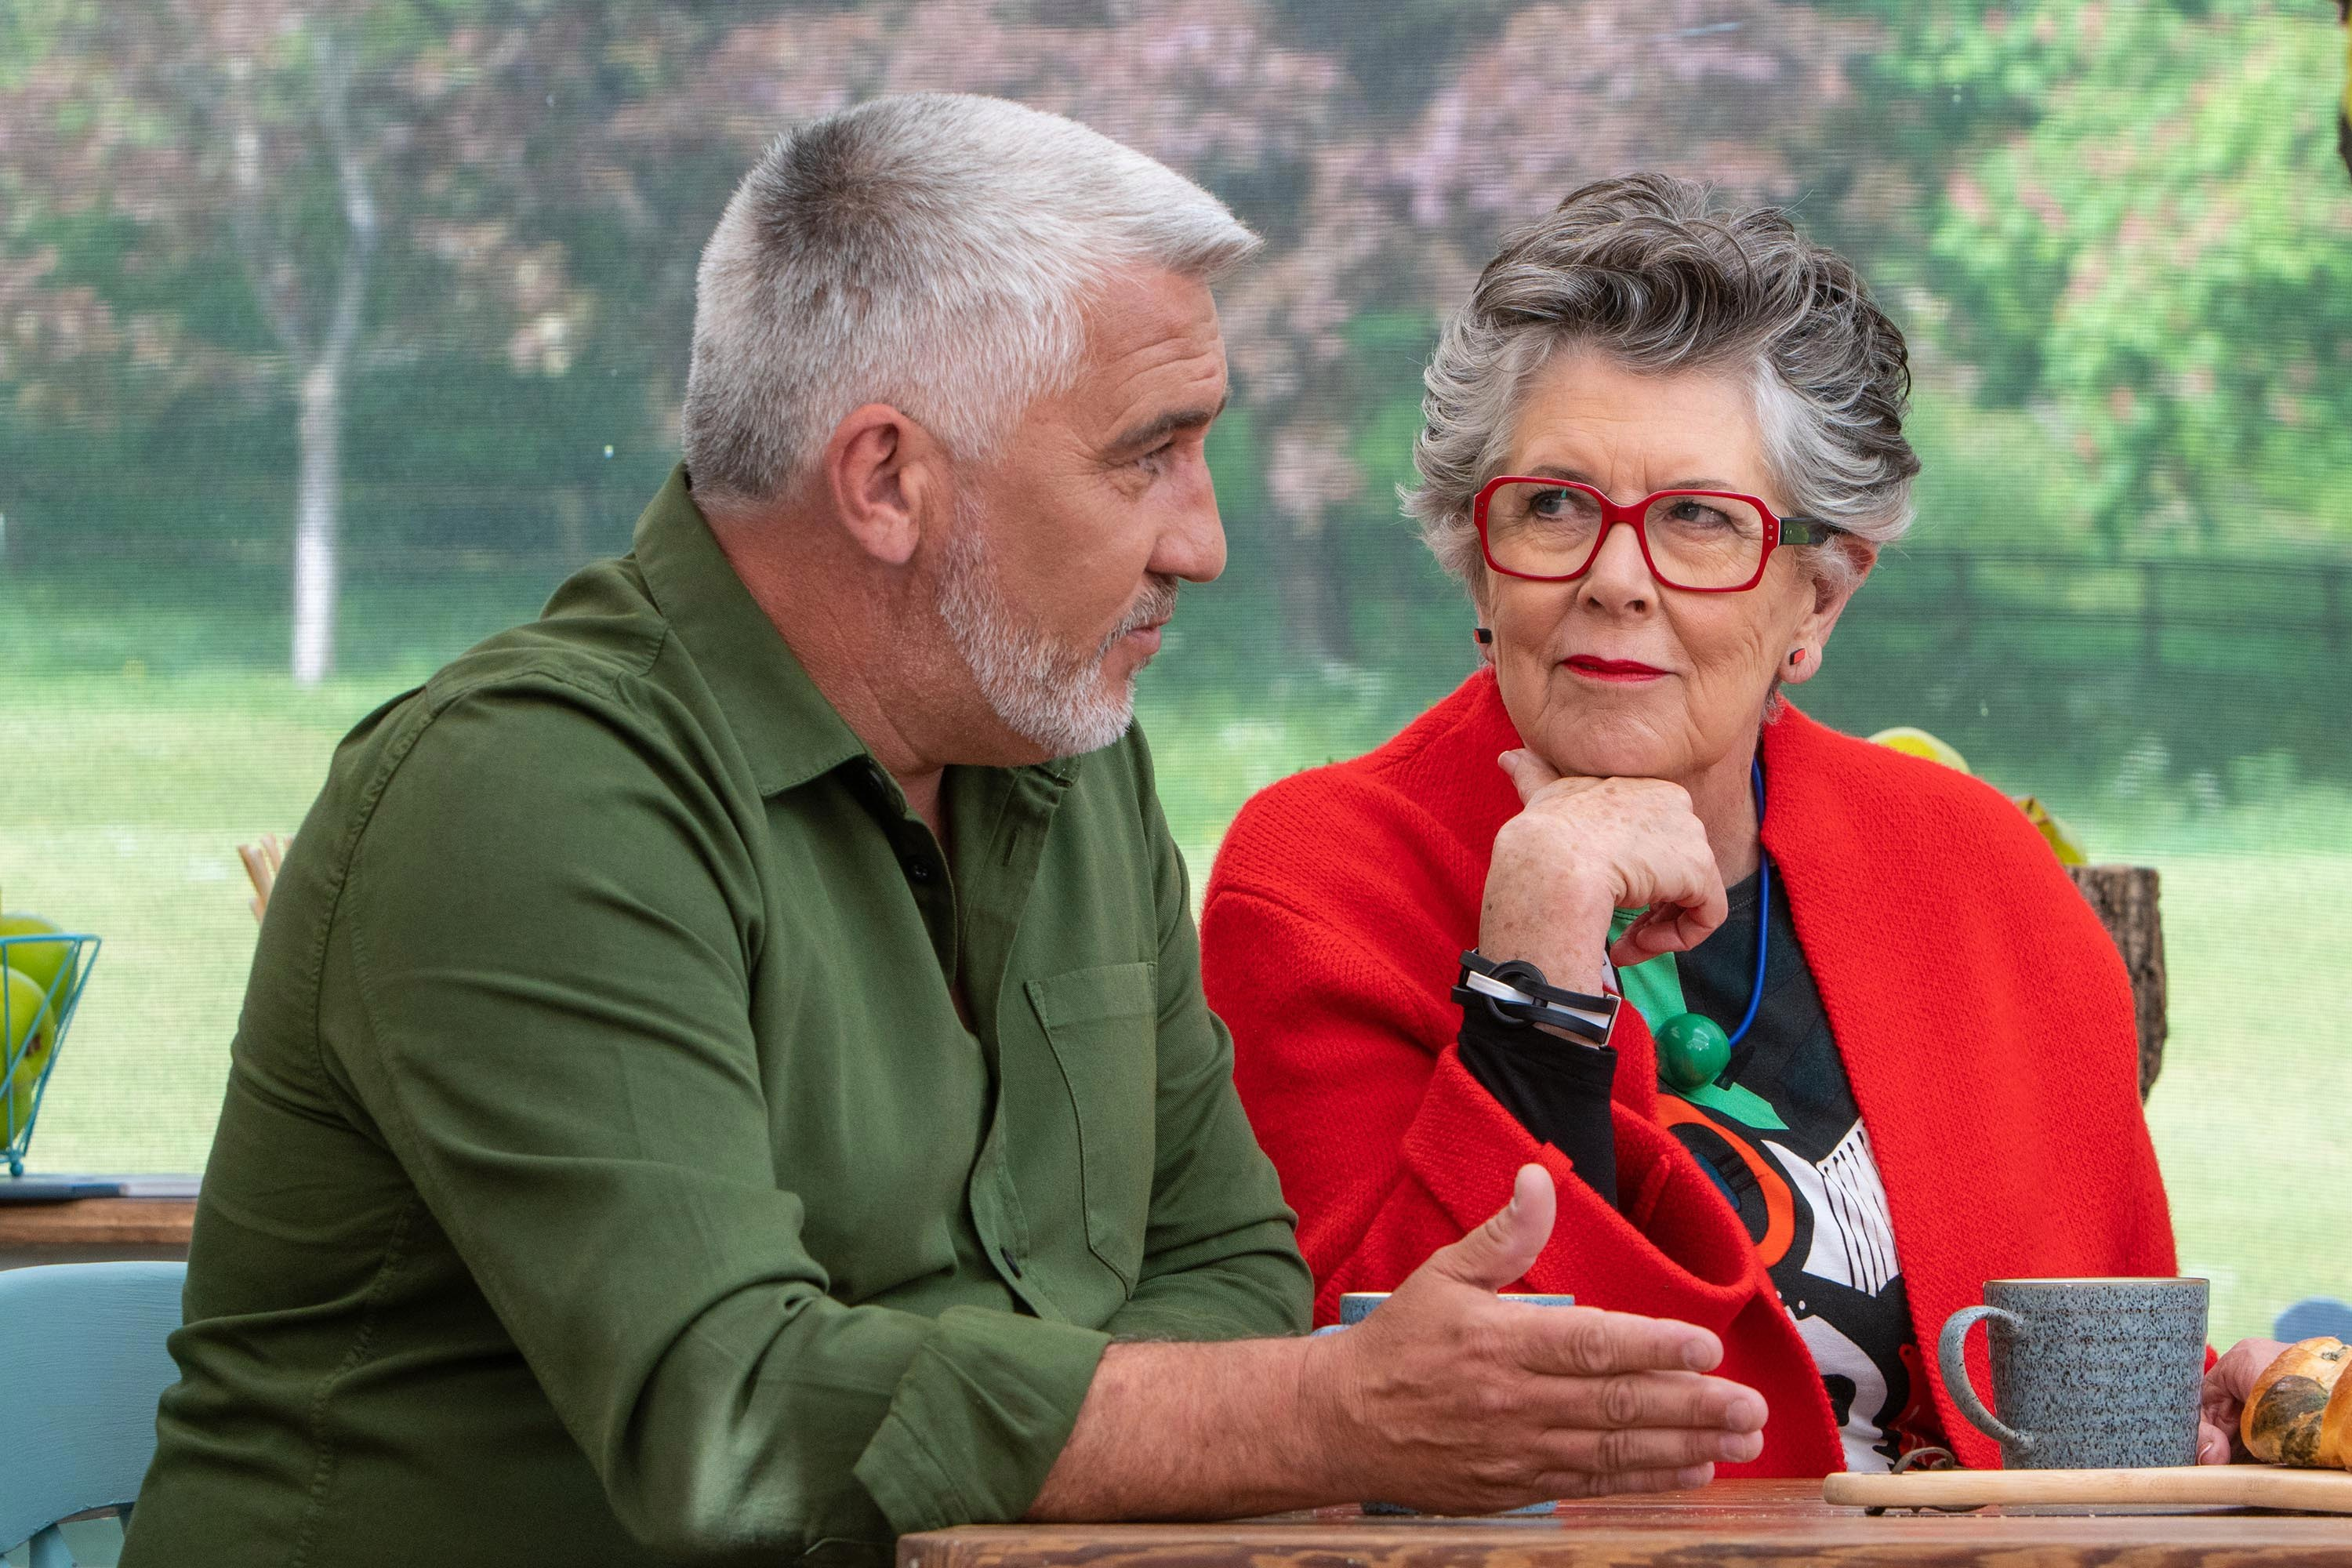 Paul Hollywood and Prue Leith sitting down, with Leith looking at Hollywood.